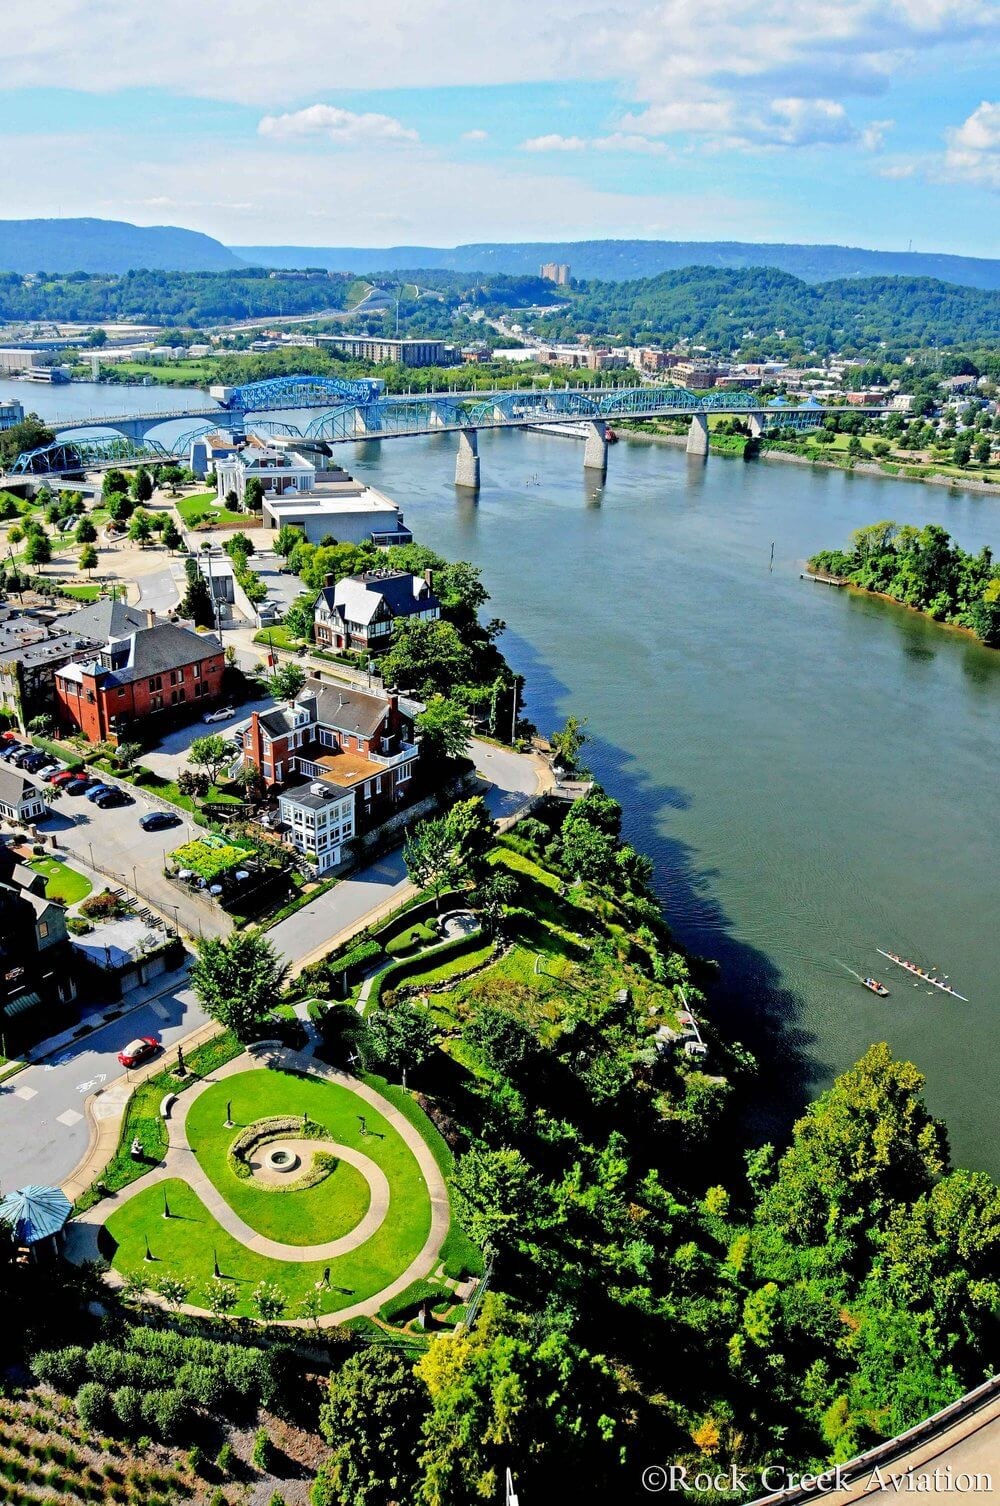 D owntown Chattanooga Aerial View